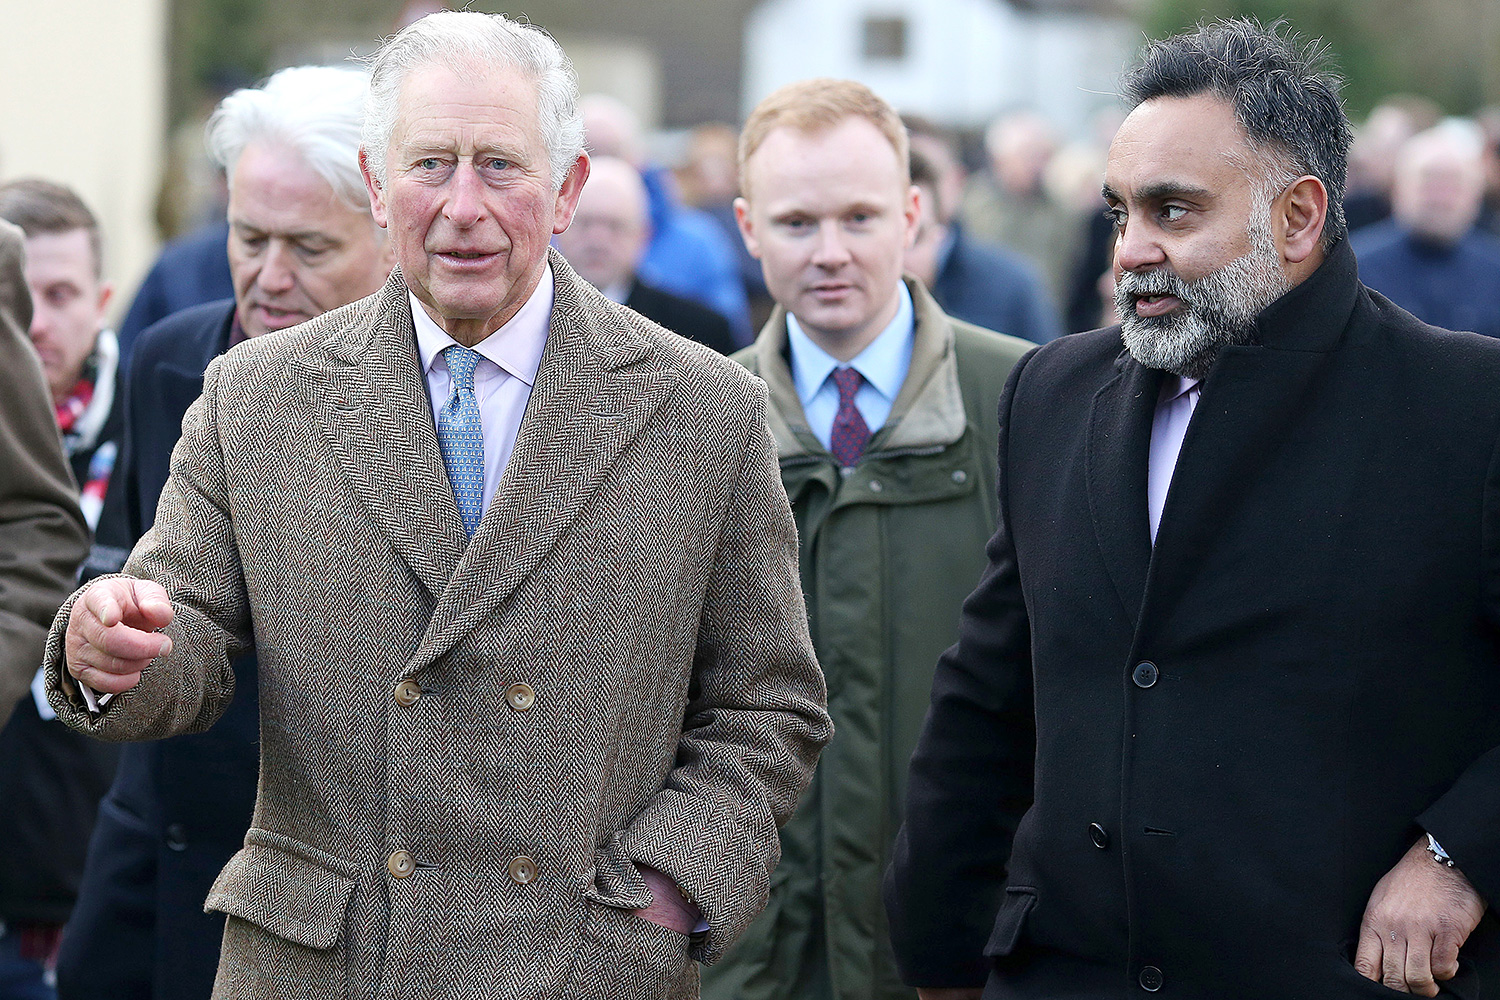 Prince Charles, Prince Of Wales tours the village of Fishlake during a visit to South Yorkshire which was hit by floods earlier this year, on December 23, 2019 in Fishlake, South Yorkshire